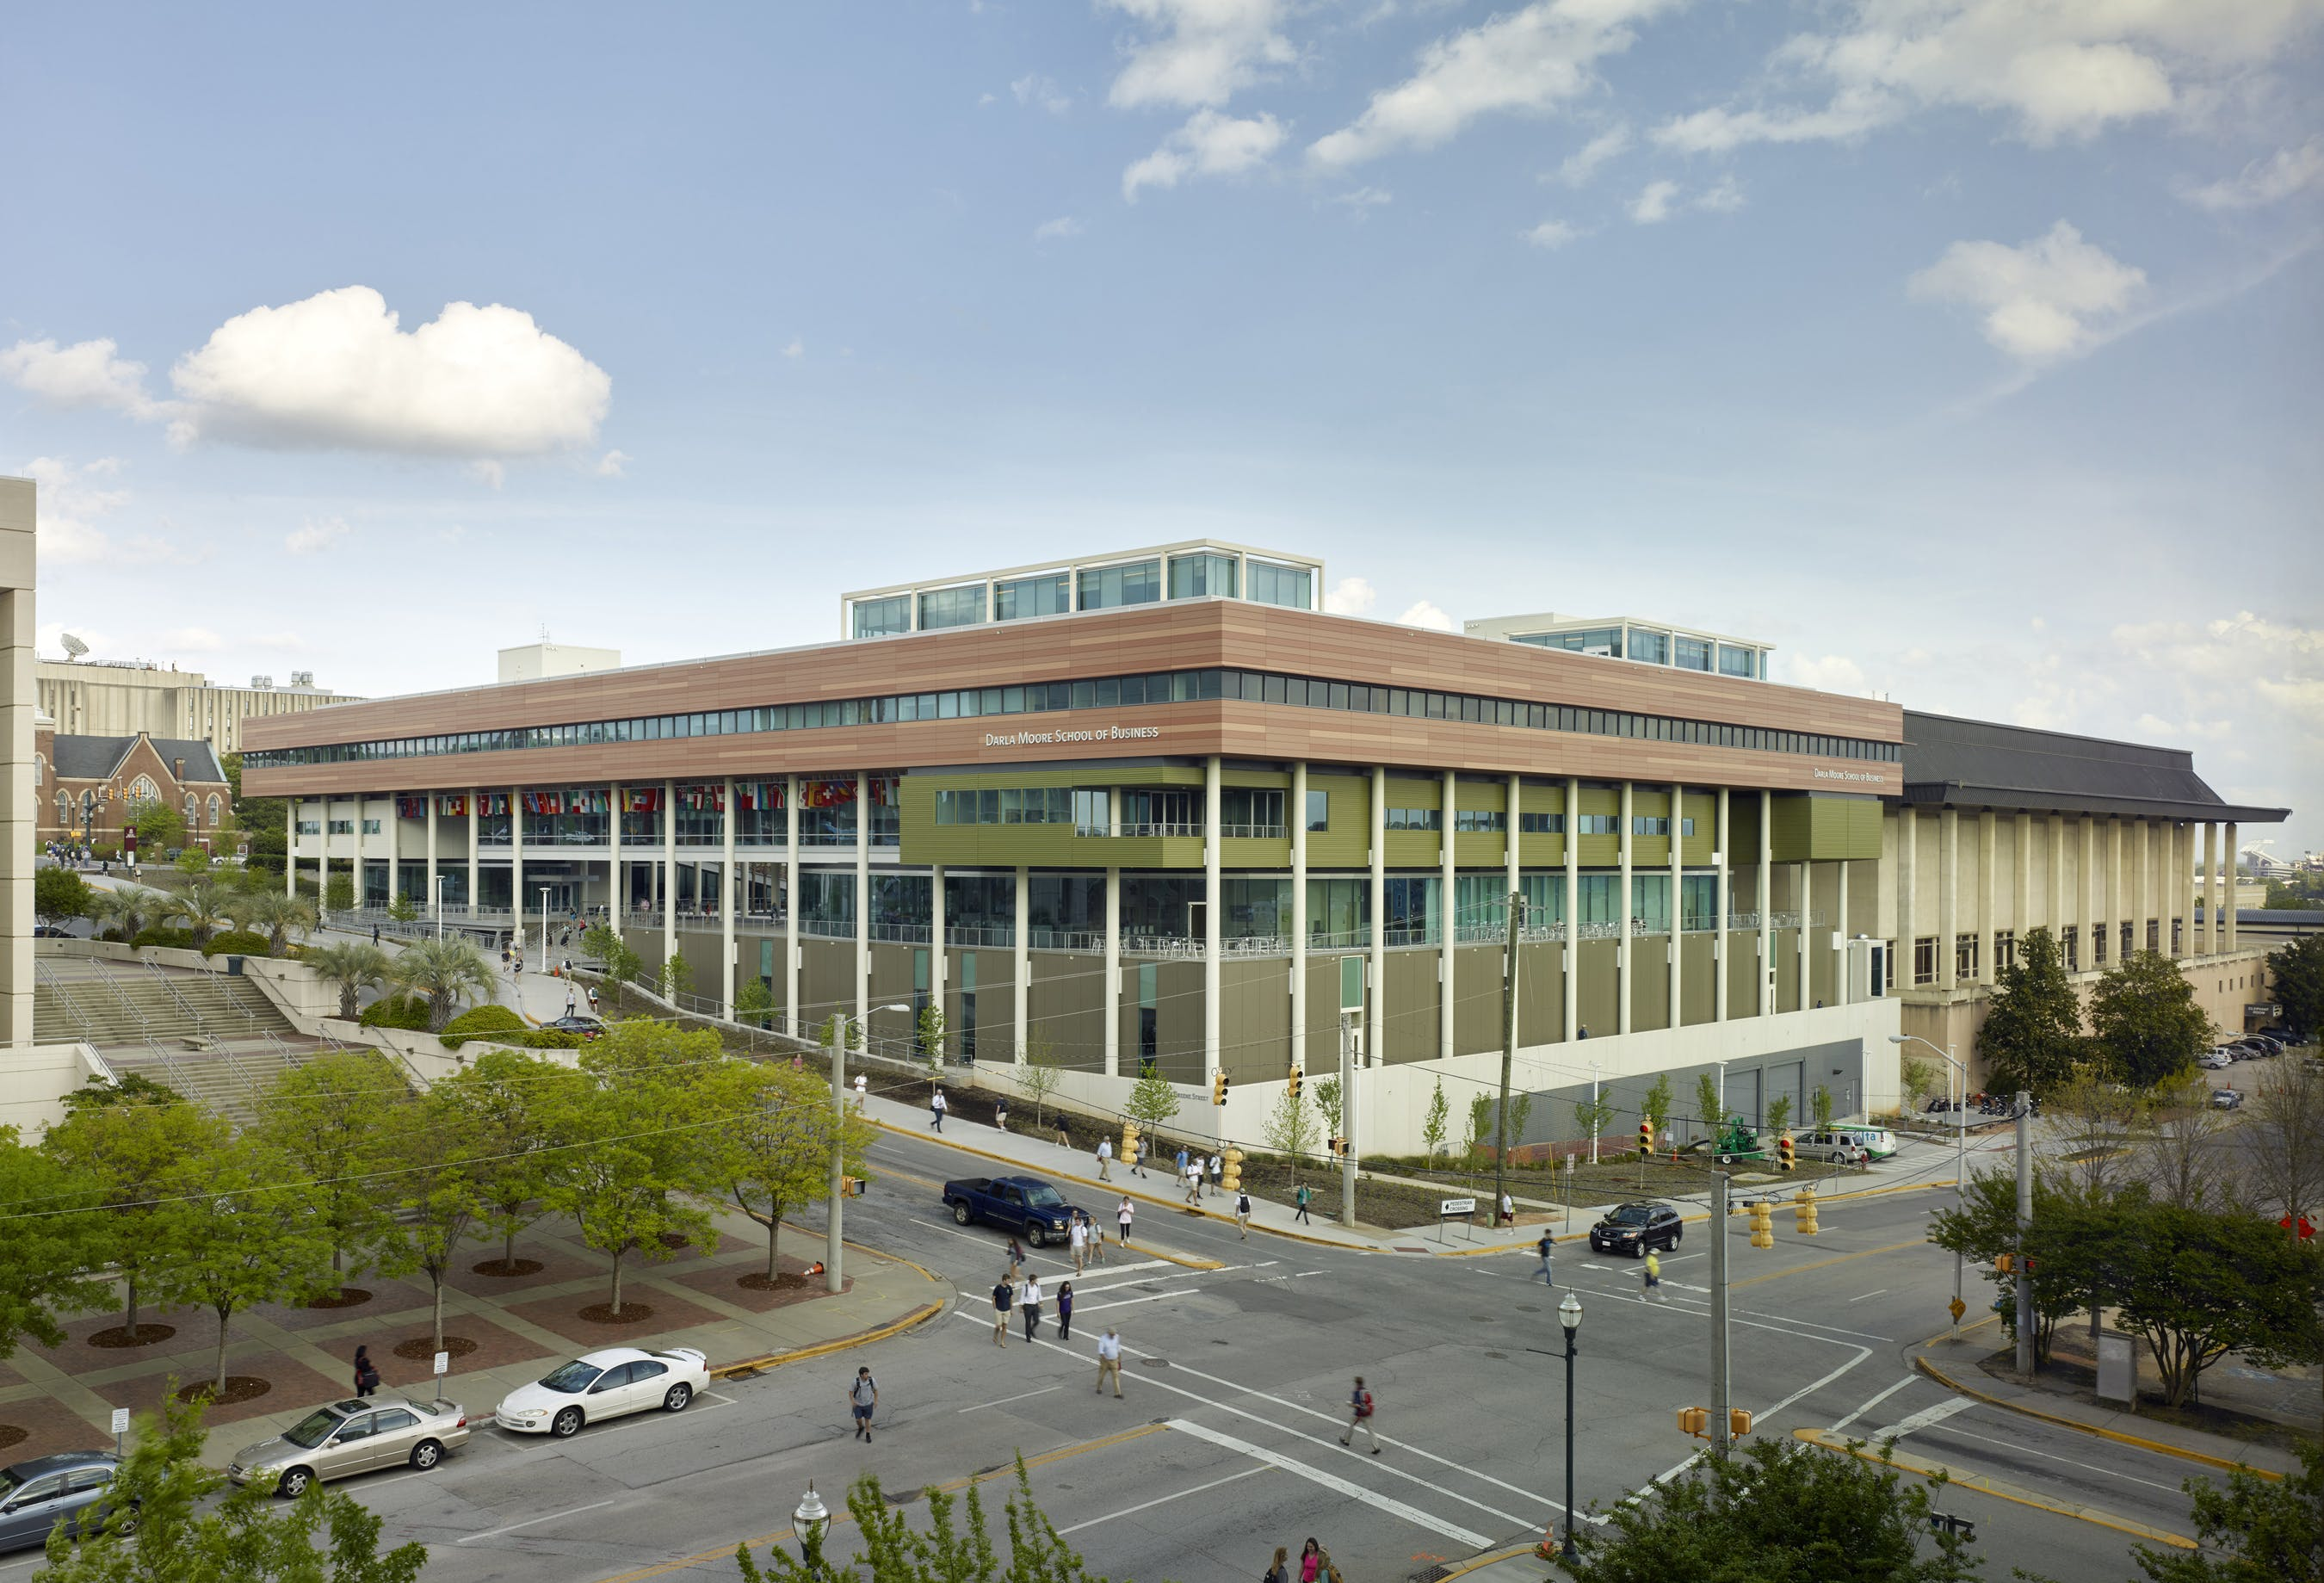 Business School On Path To Becoming Largest Net Zero Energy Building In Southeastern United